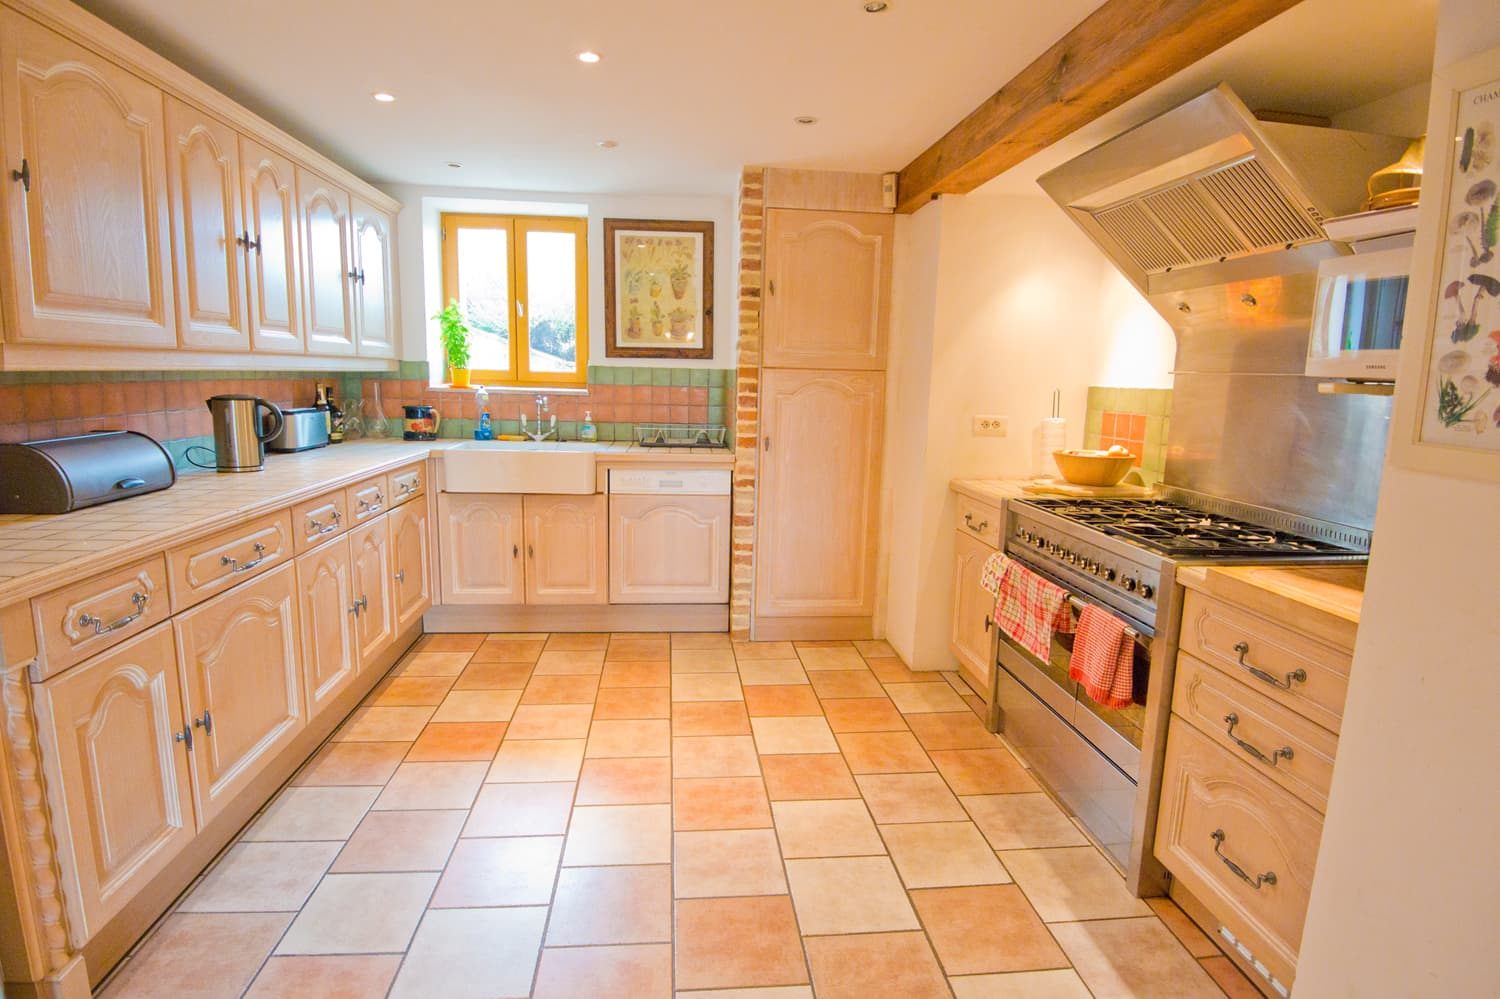 Kitchen in South West France rental home